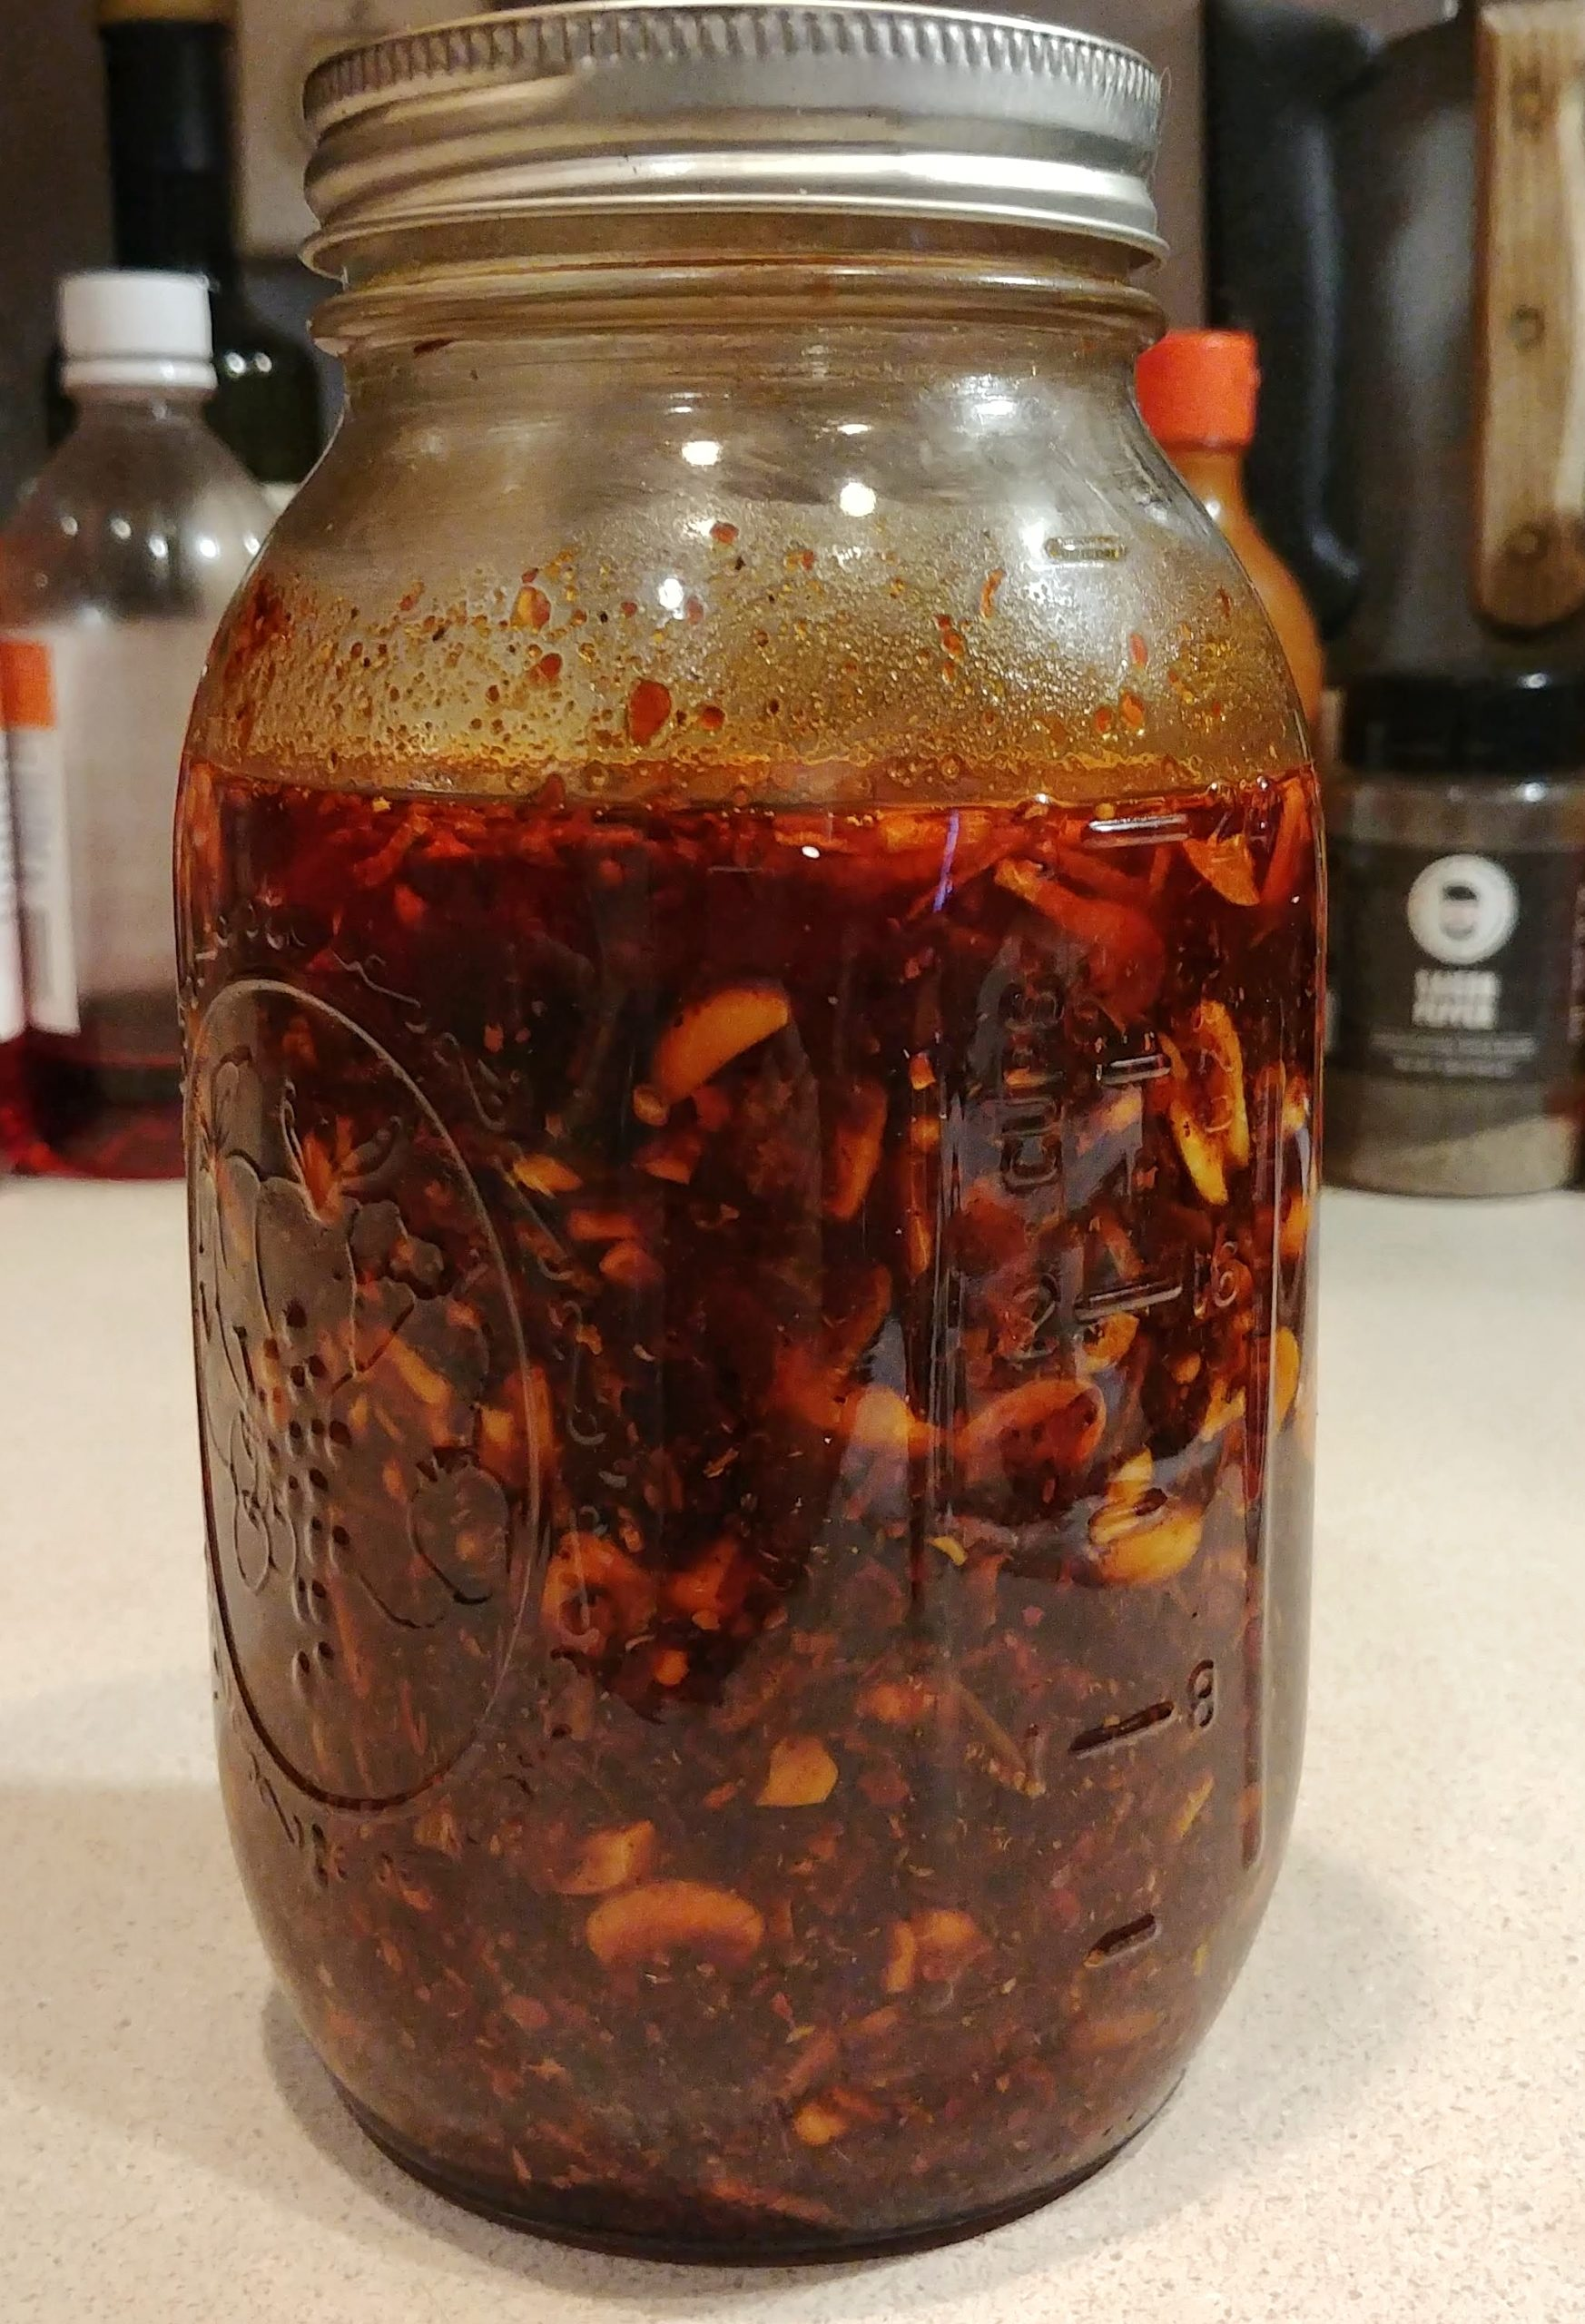 Adventures in Homemade Lao Gan Ma Chili